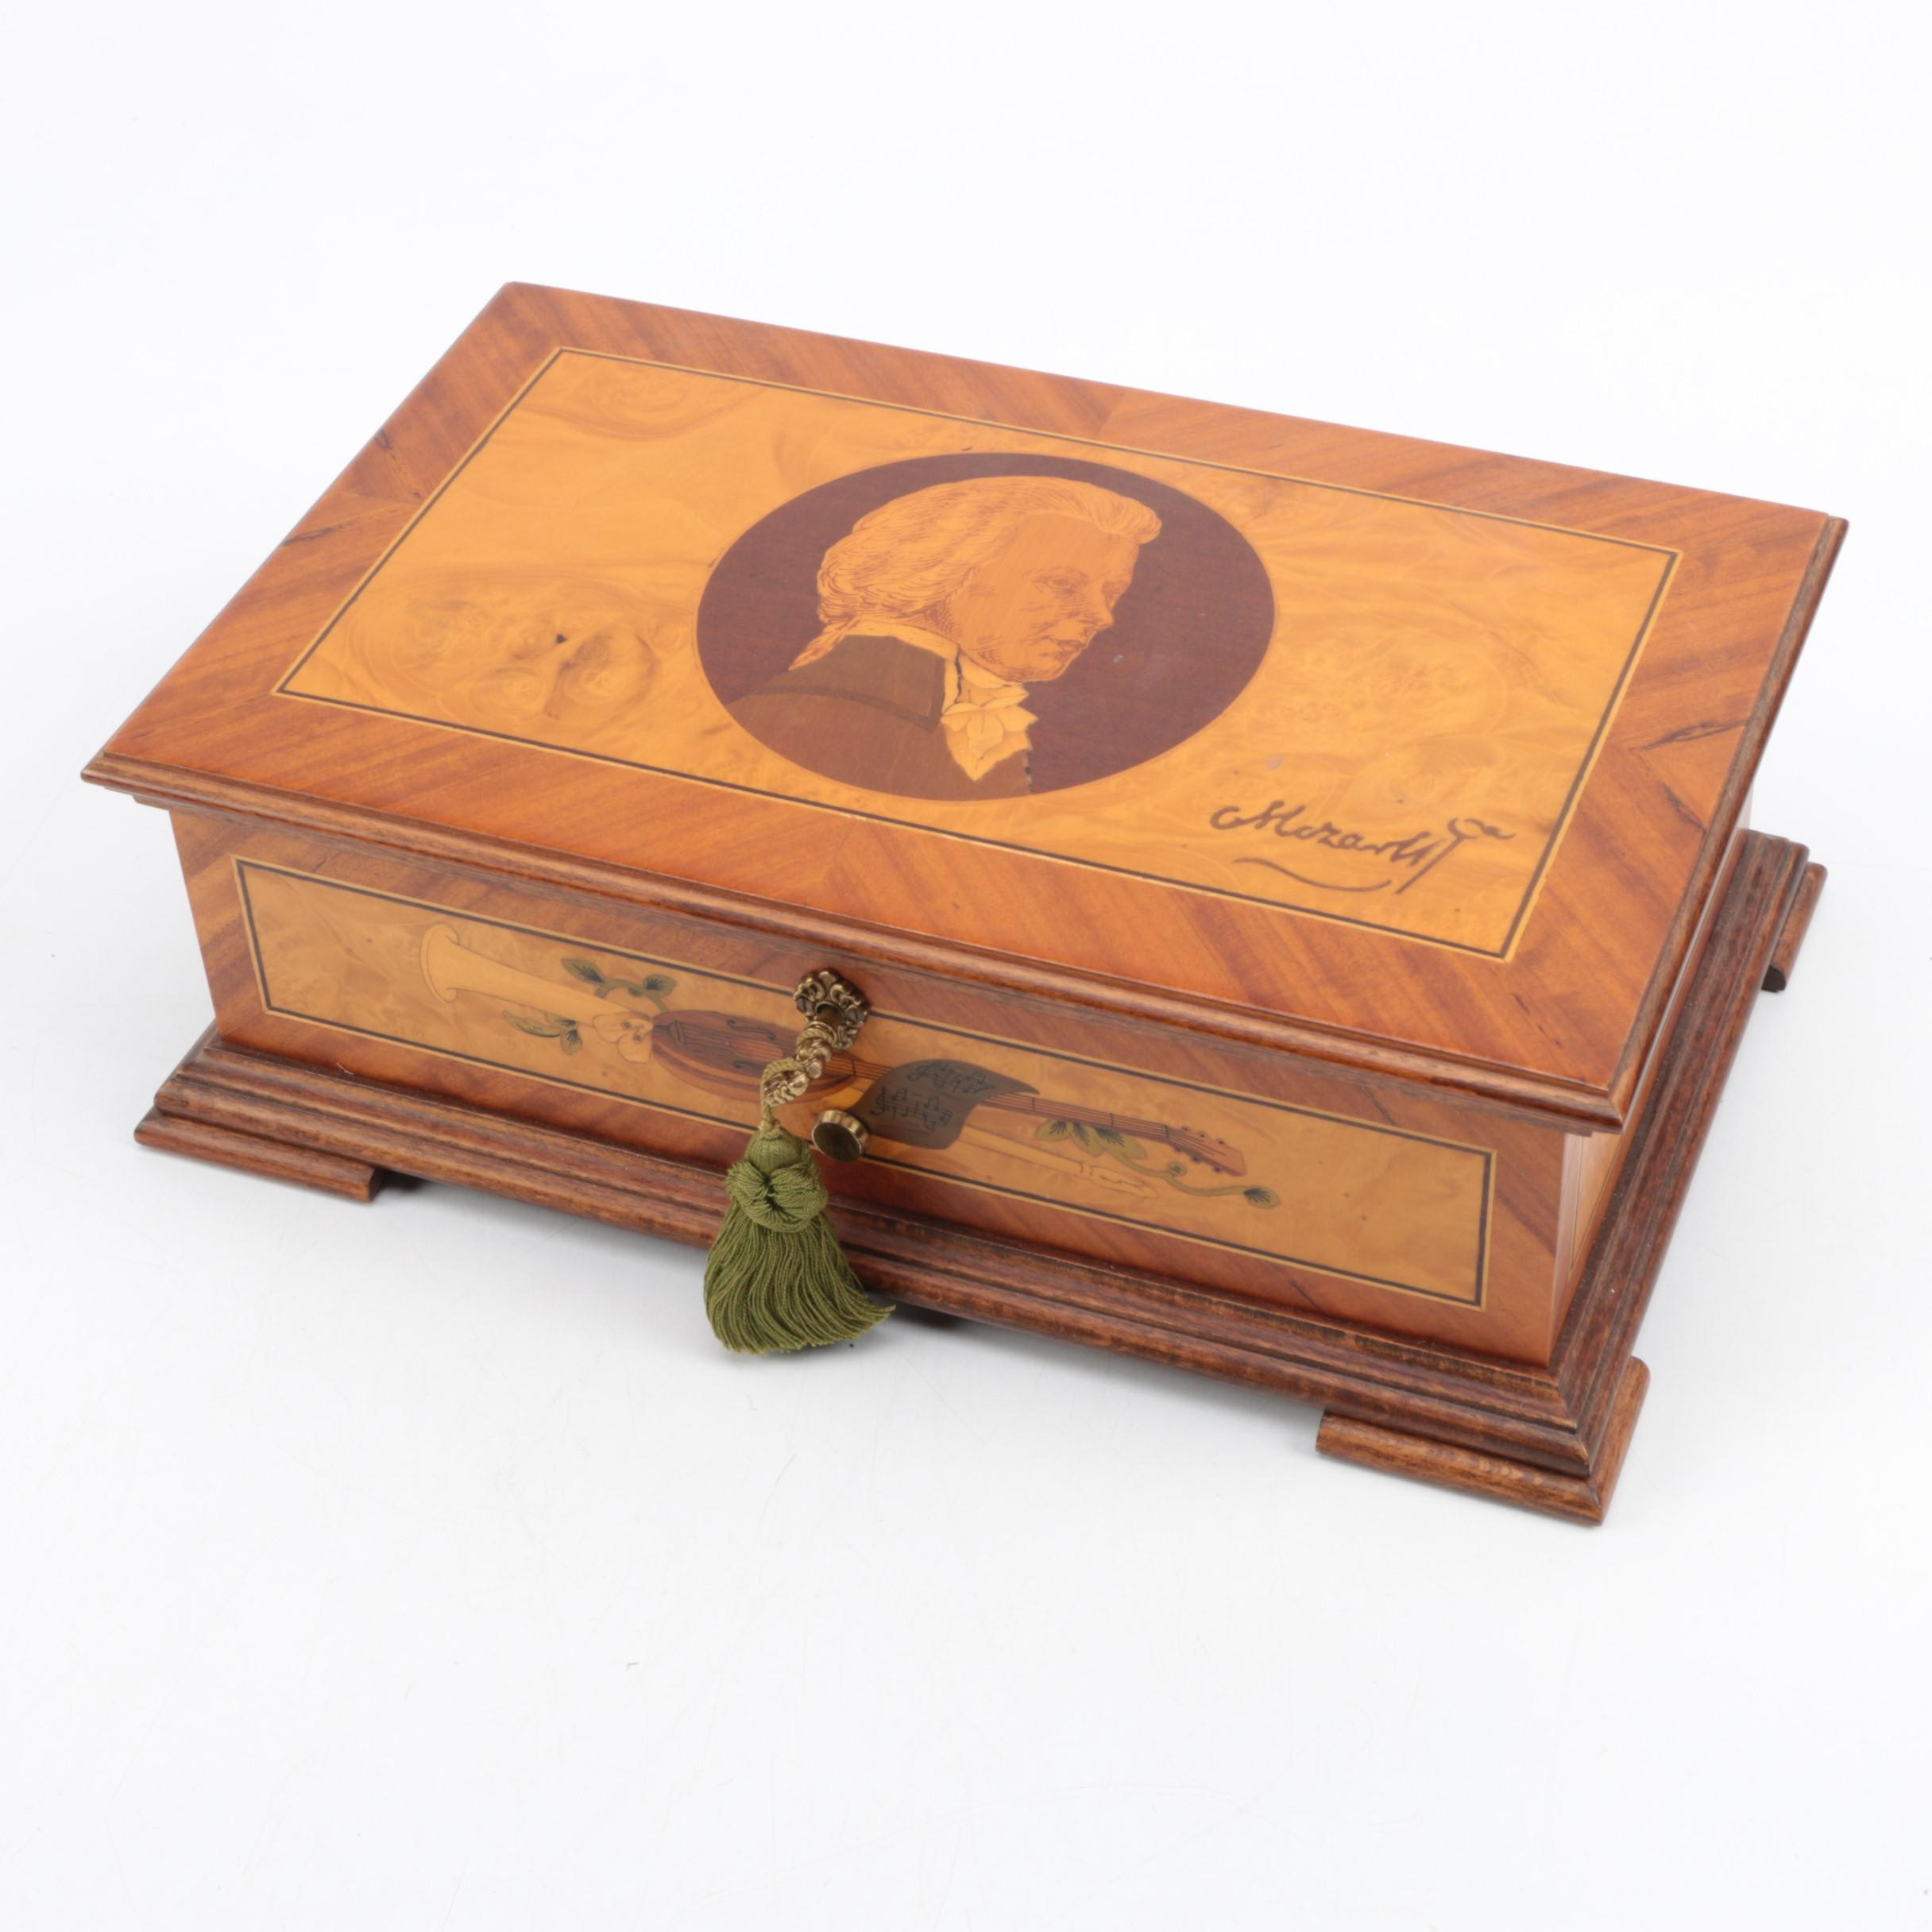 Mozart Wooden Music Box by Reuge